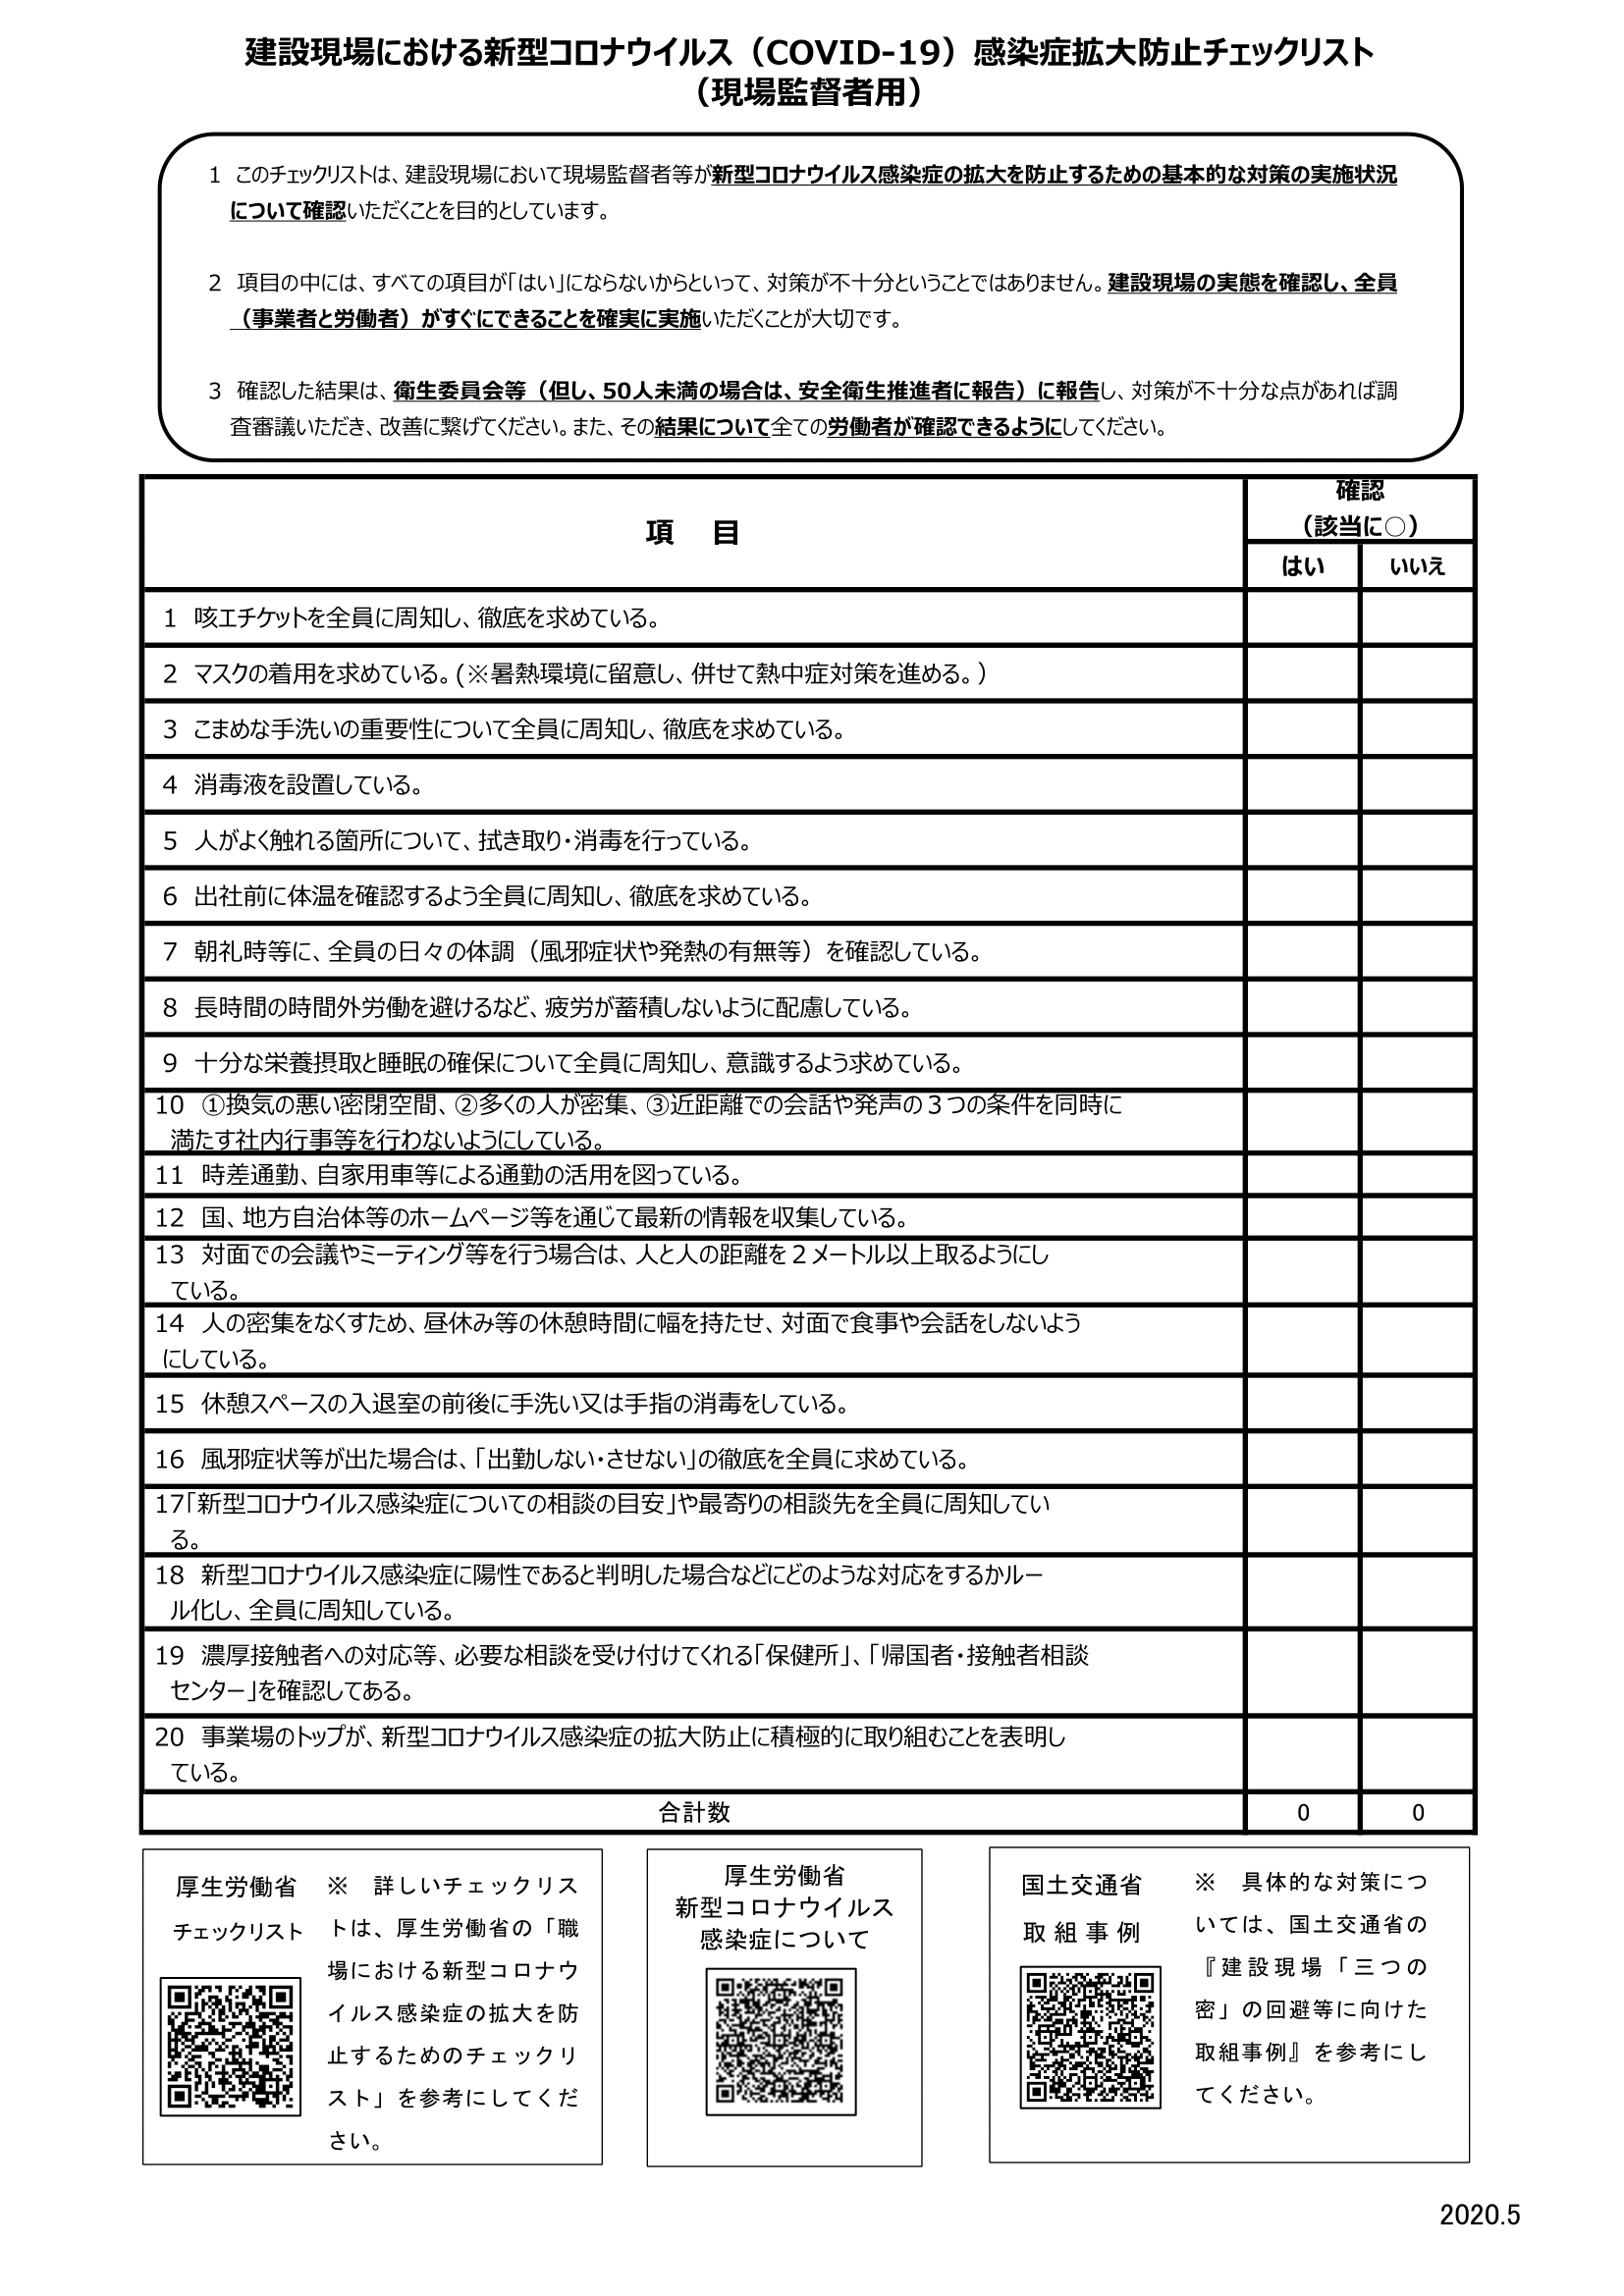 COVID-19_Checklist_for Construction-1.png